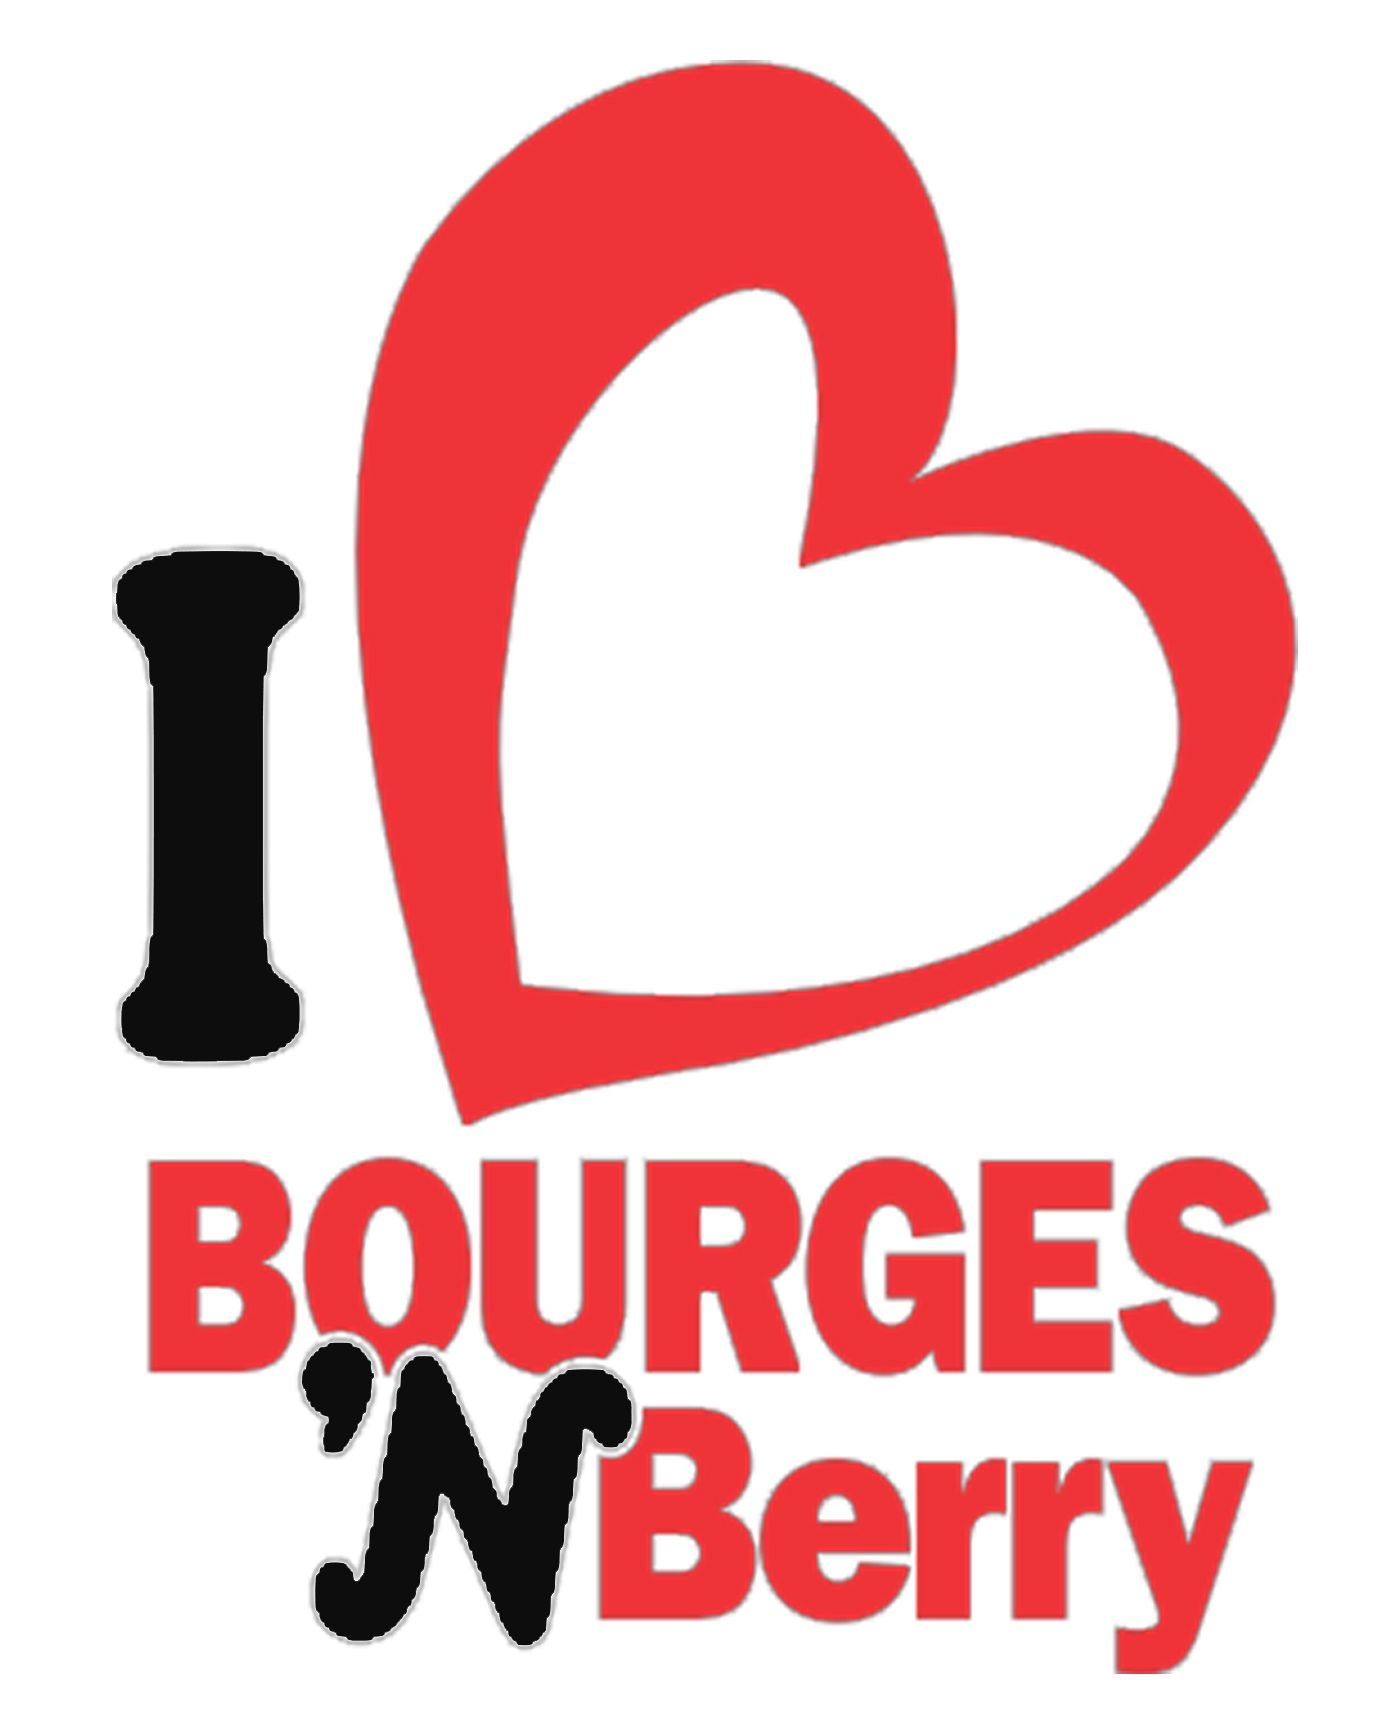 Logo de l 39 office de tourisme de bourges i berry love signs berries et signs - Office de tourisme bourges ...